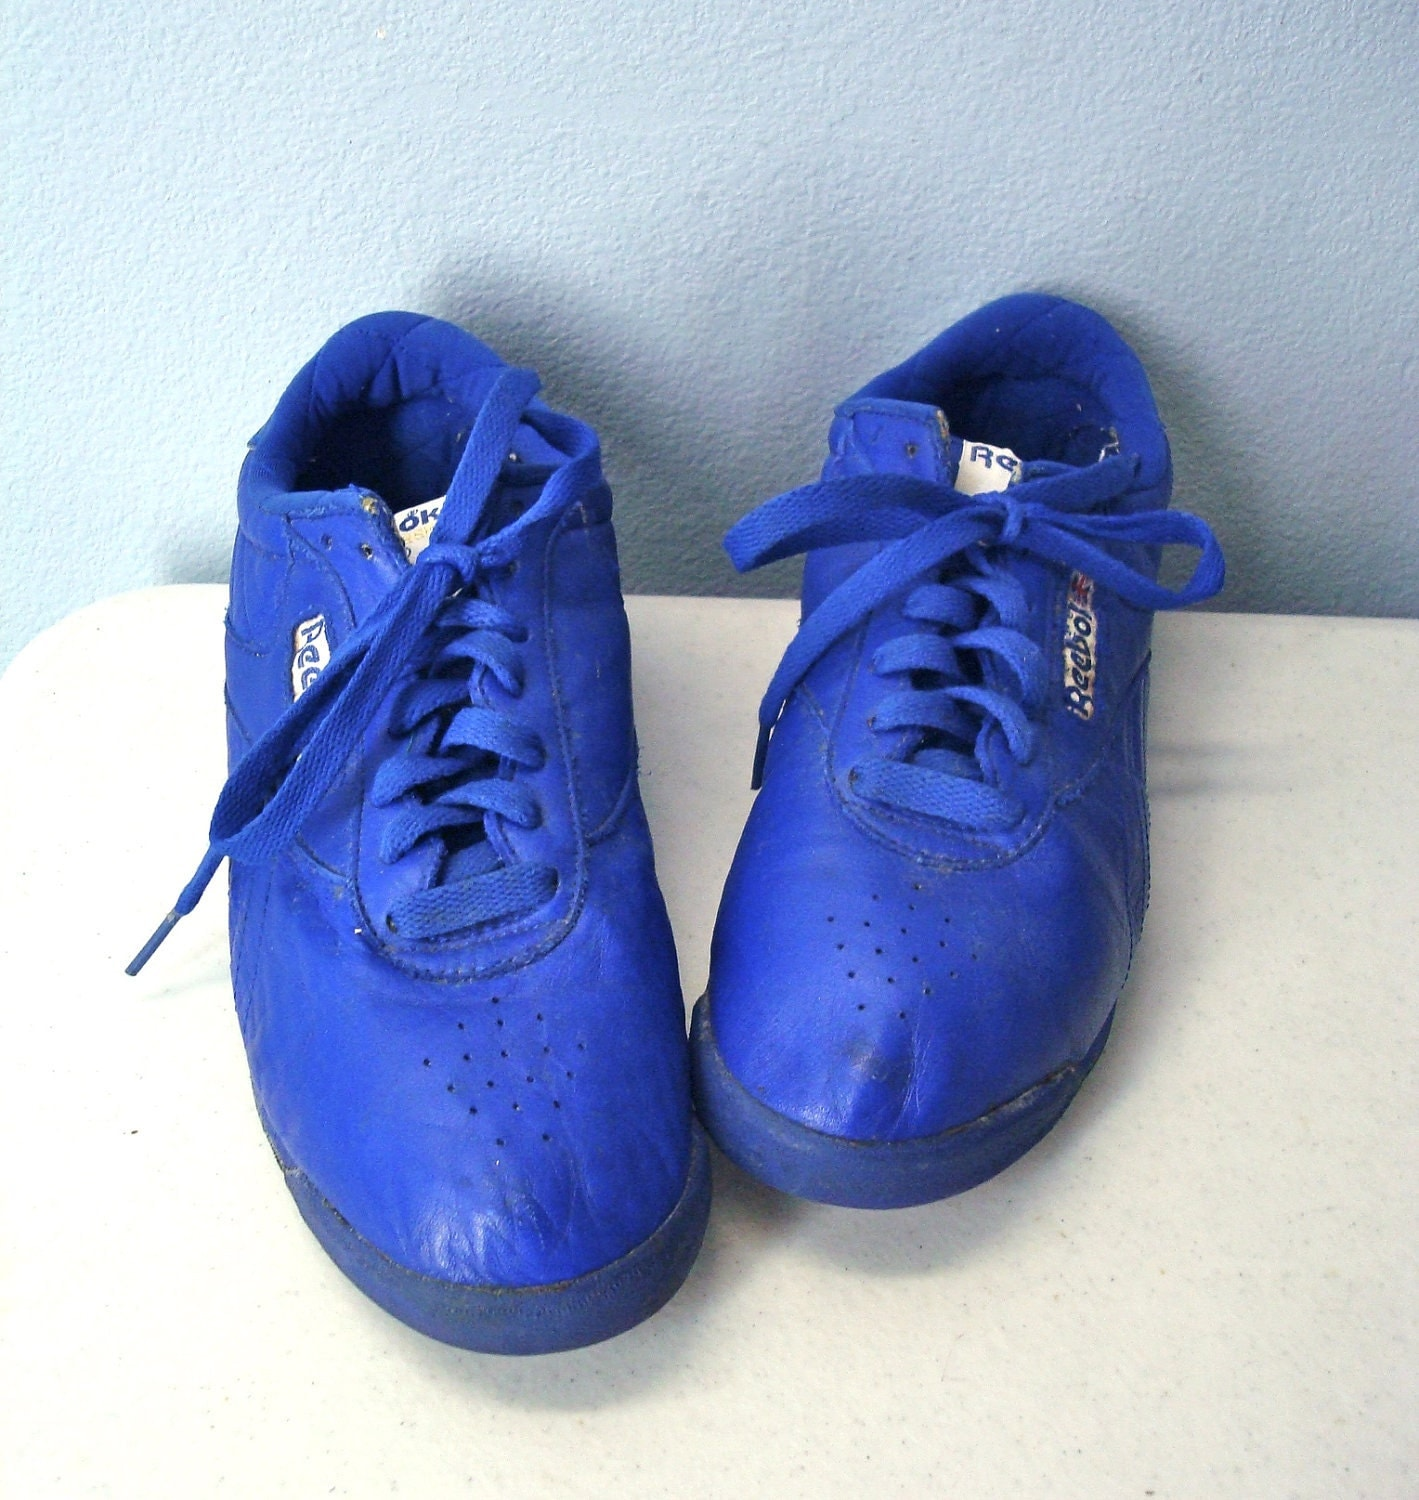 1980s reebok shoes royal blue 80s tennis shoes by